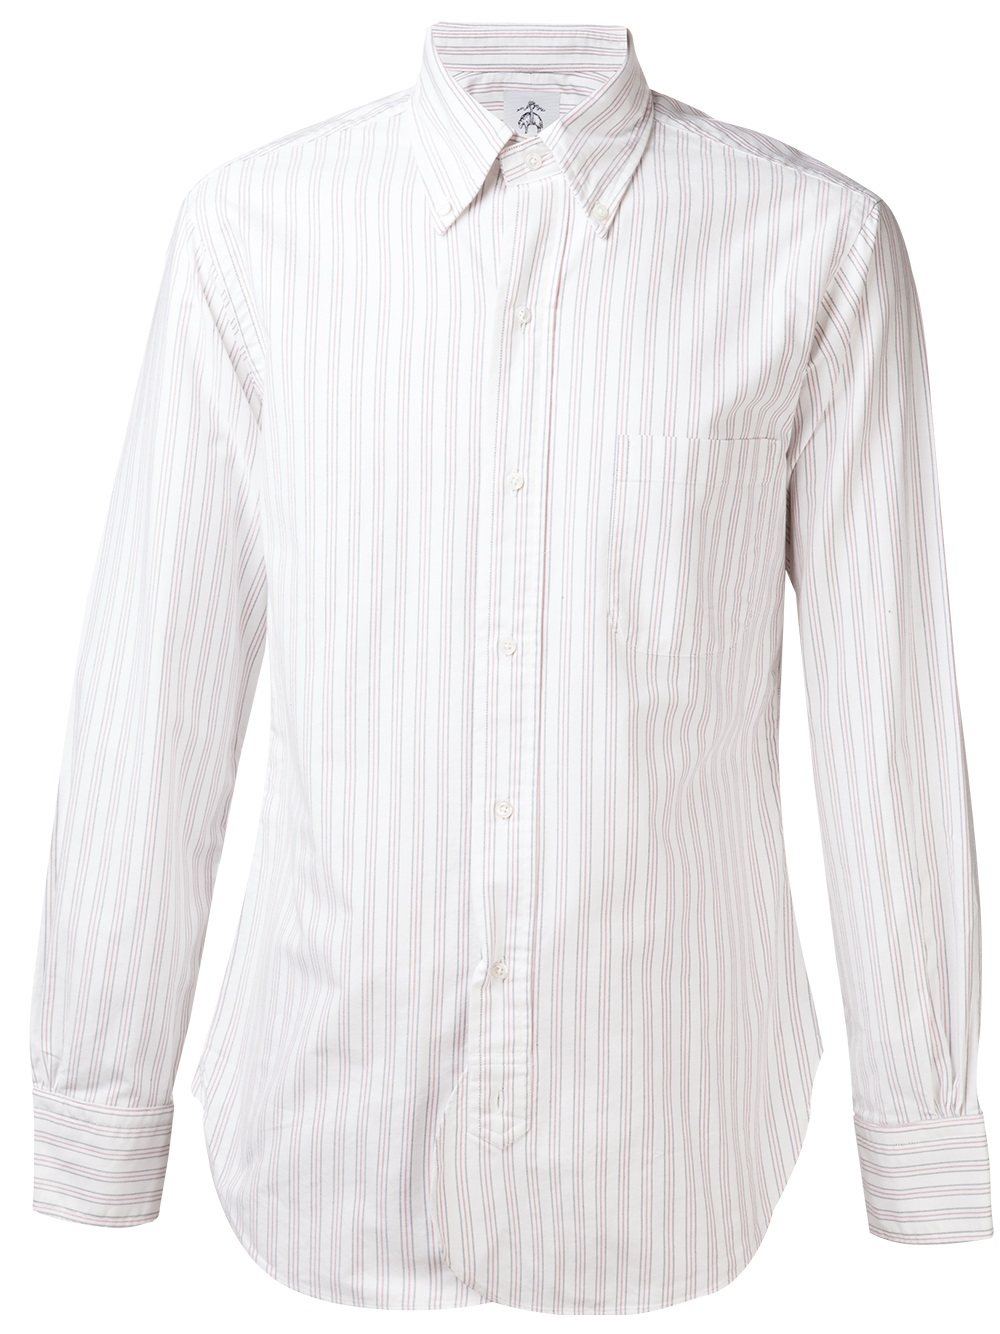 Black fleece by brooks brothers stripe pattern shirt in Brooks brothers shirt size guide